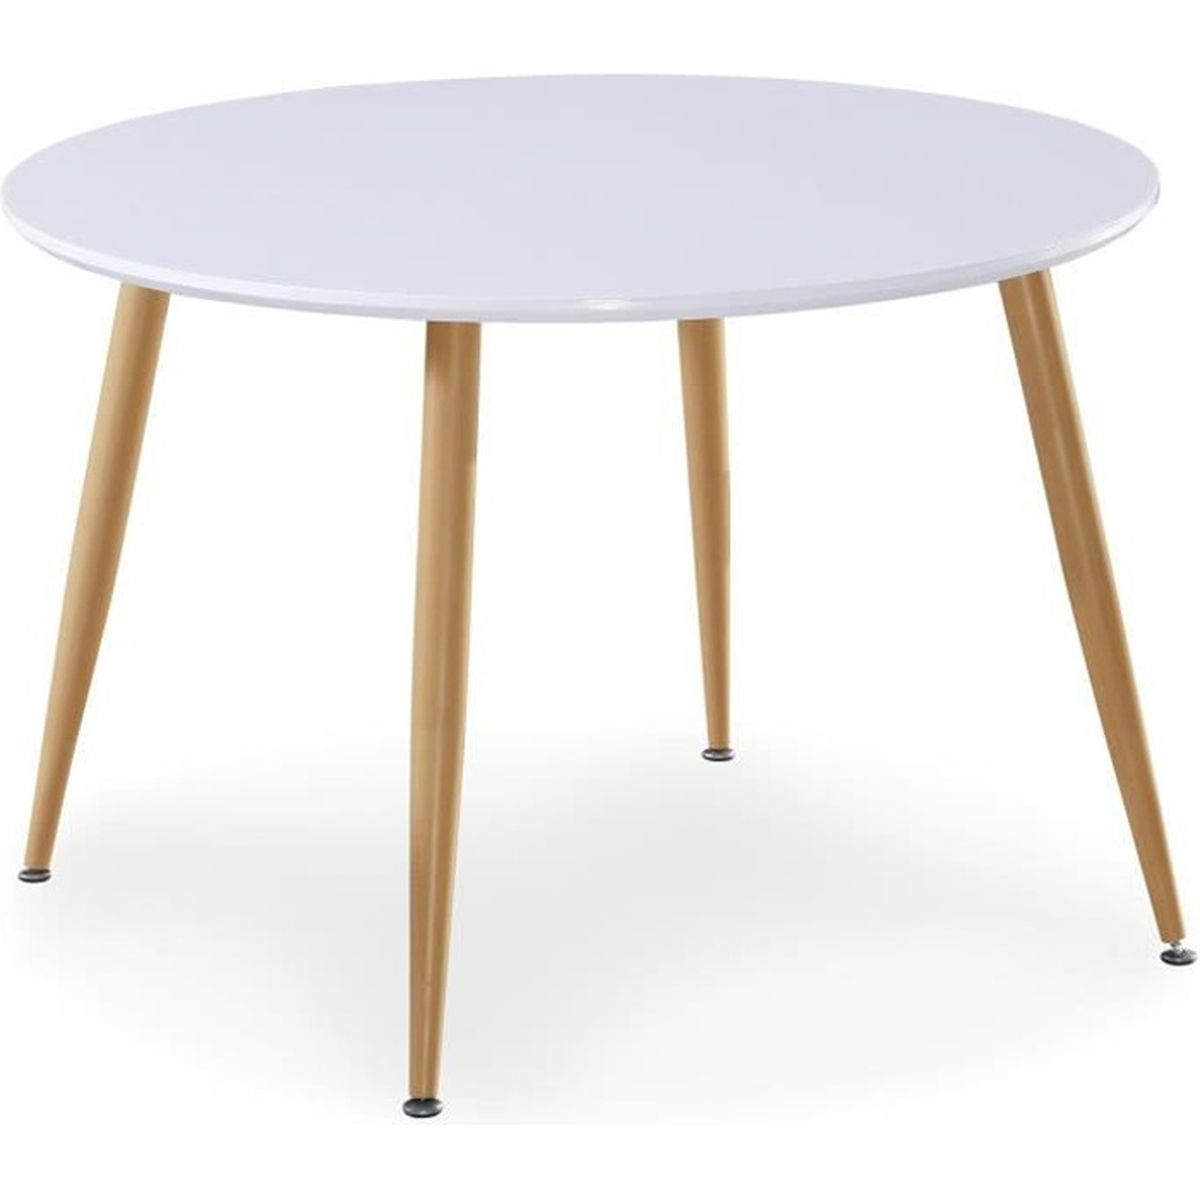 Table salle a manger scandinave for Table scandinave blanc et bois